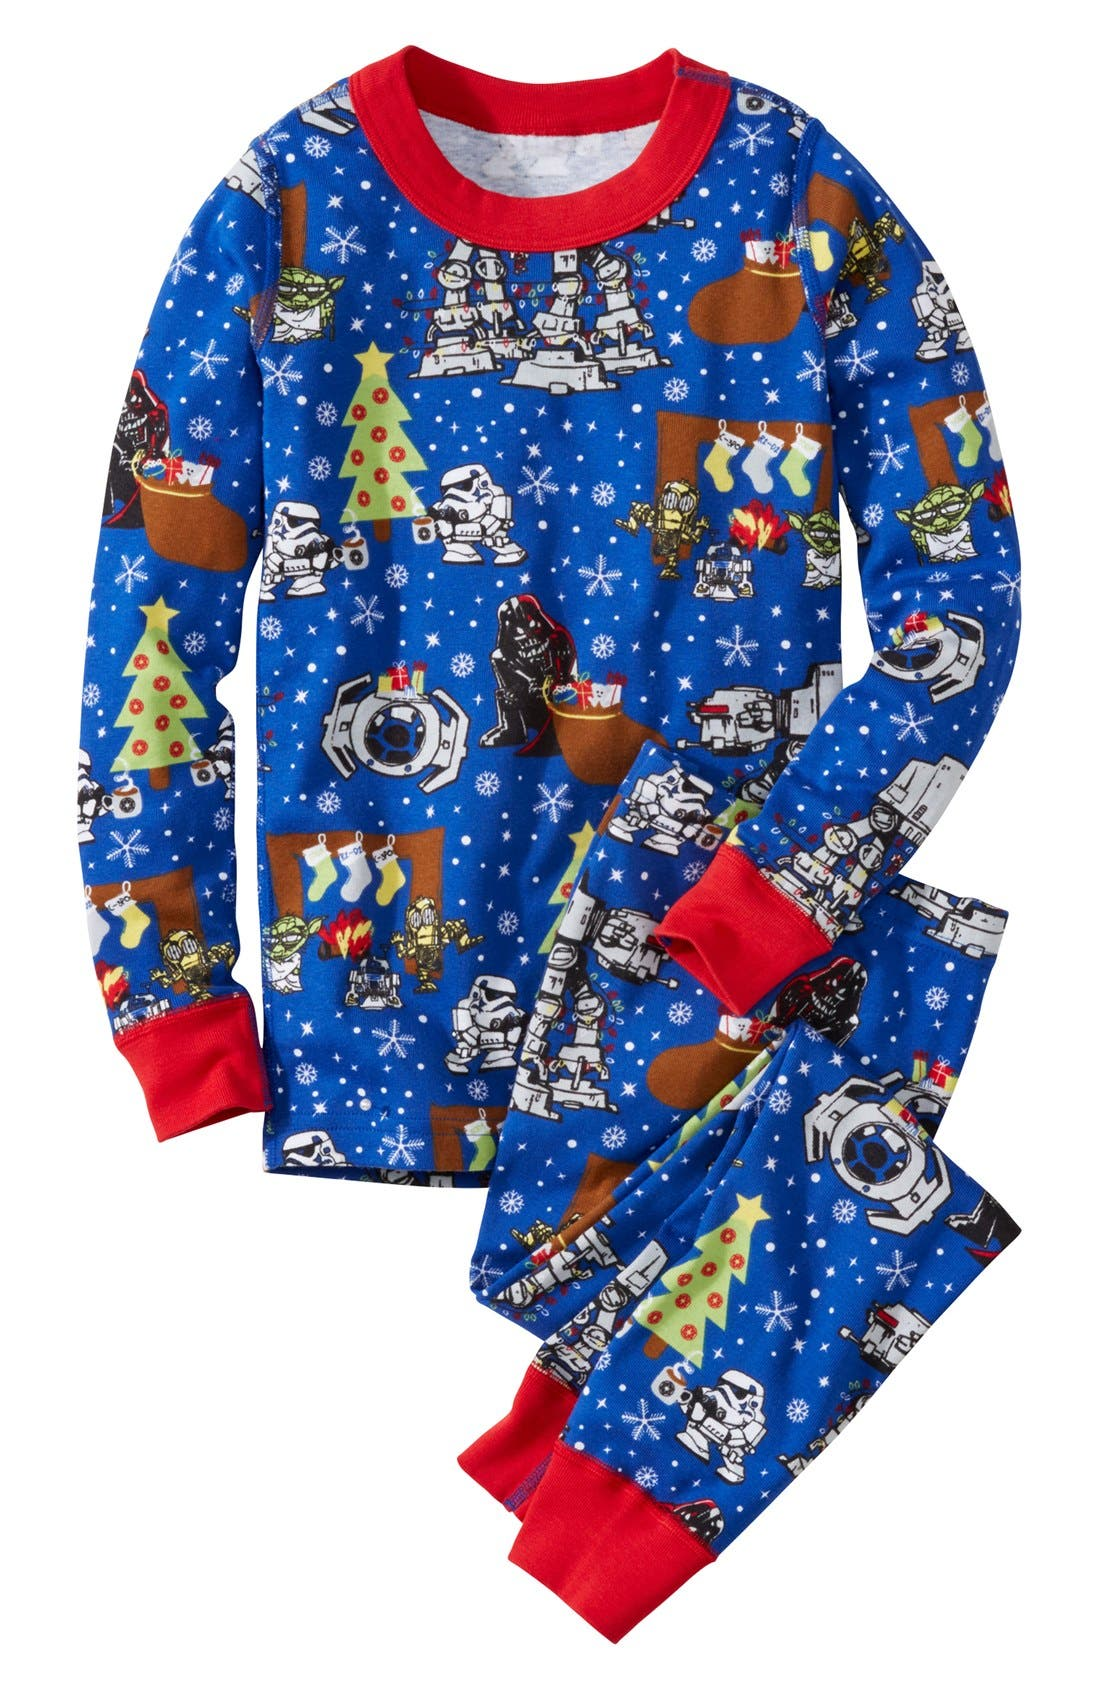 Main Image - Hanna Andersson Star Wars™ Holiday Organic Cotton Fitted Two-Piece Pajamas (Toddler Boys, Little Boys & Big Boys)